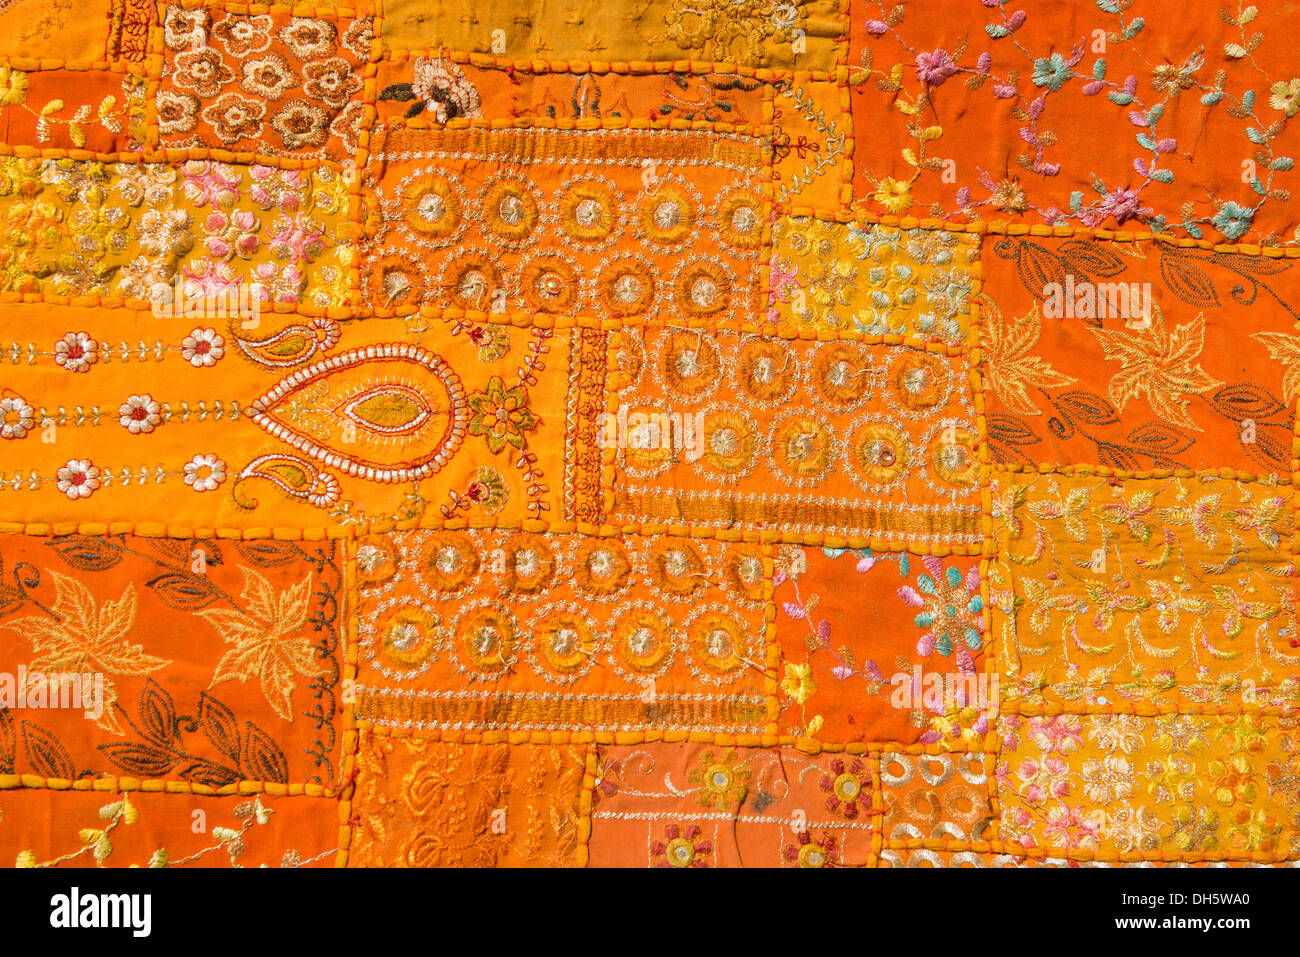 Tapisserie traditionnelle, broderie, couture patchwork, détail, Pushkar, Rajasthan, India Photo Stock